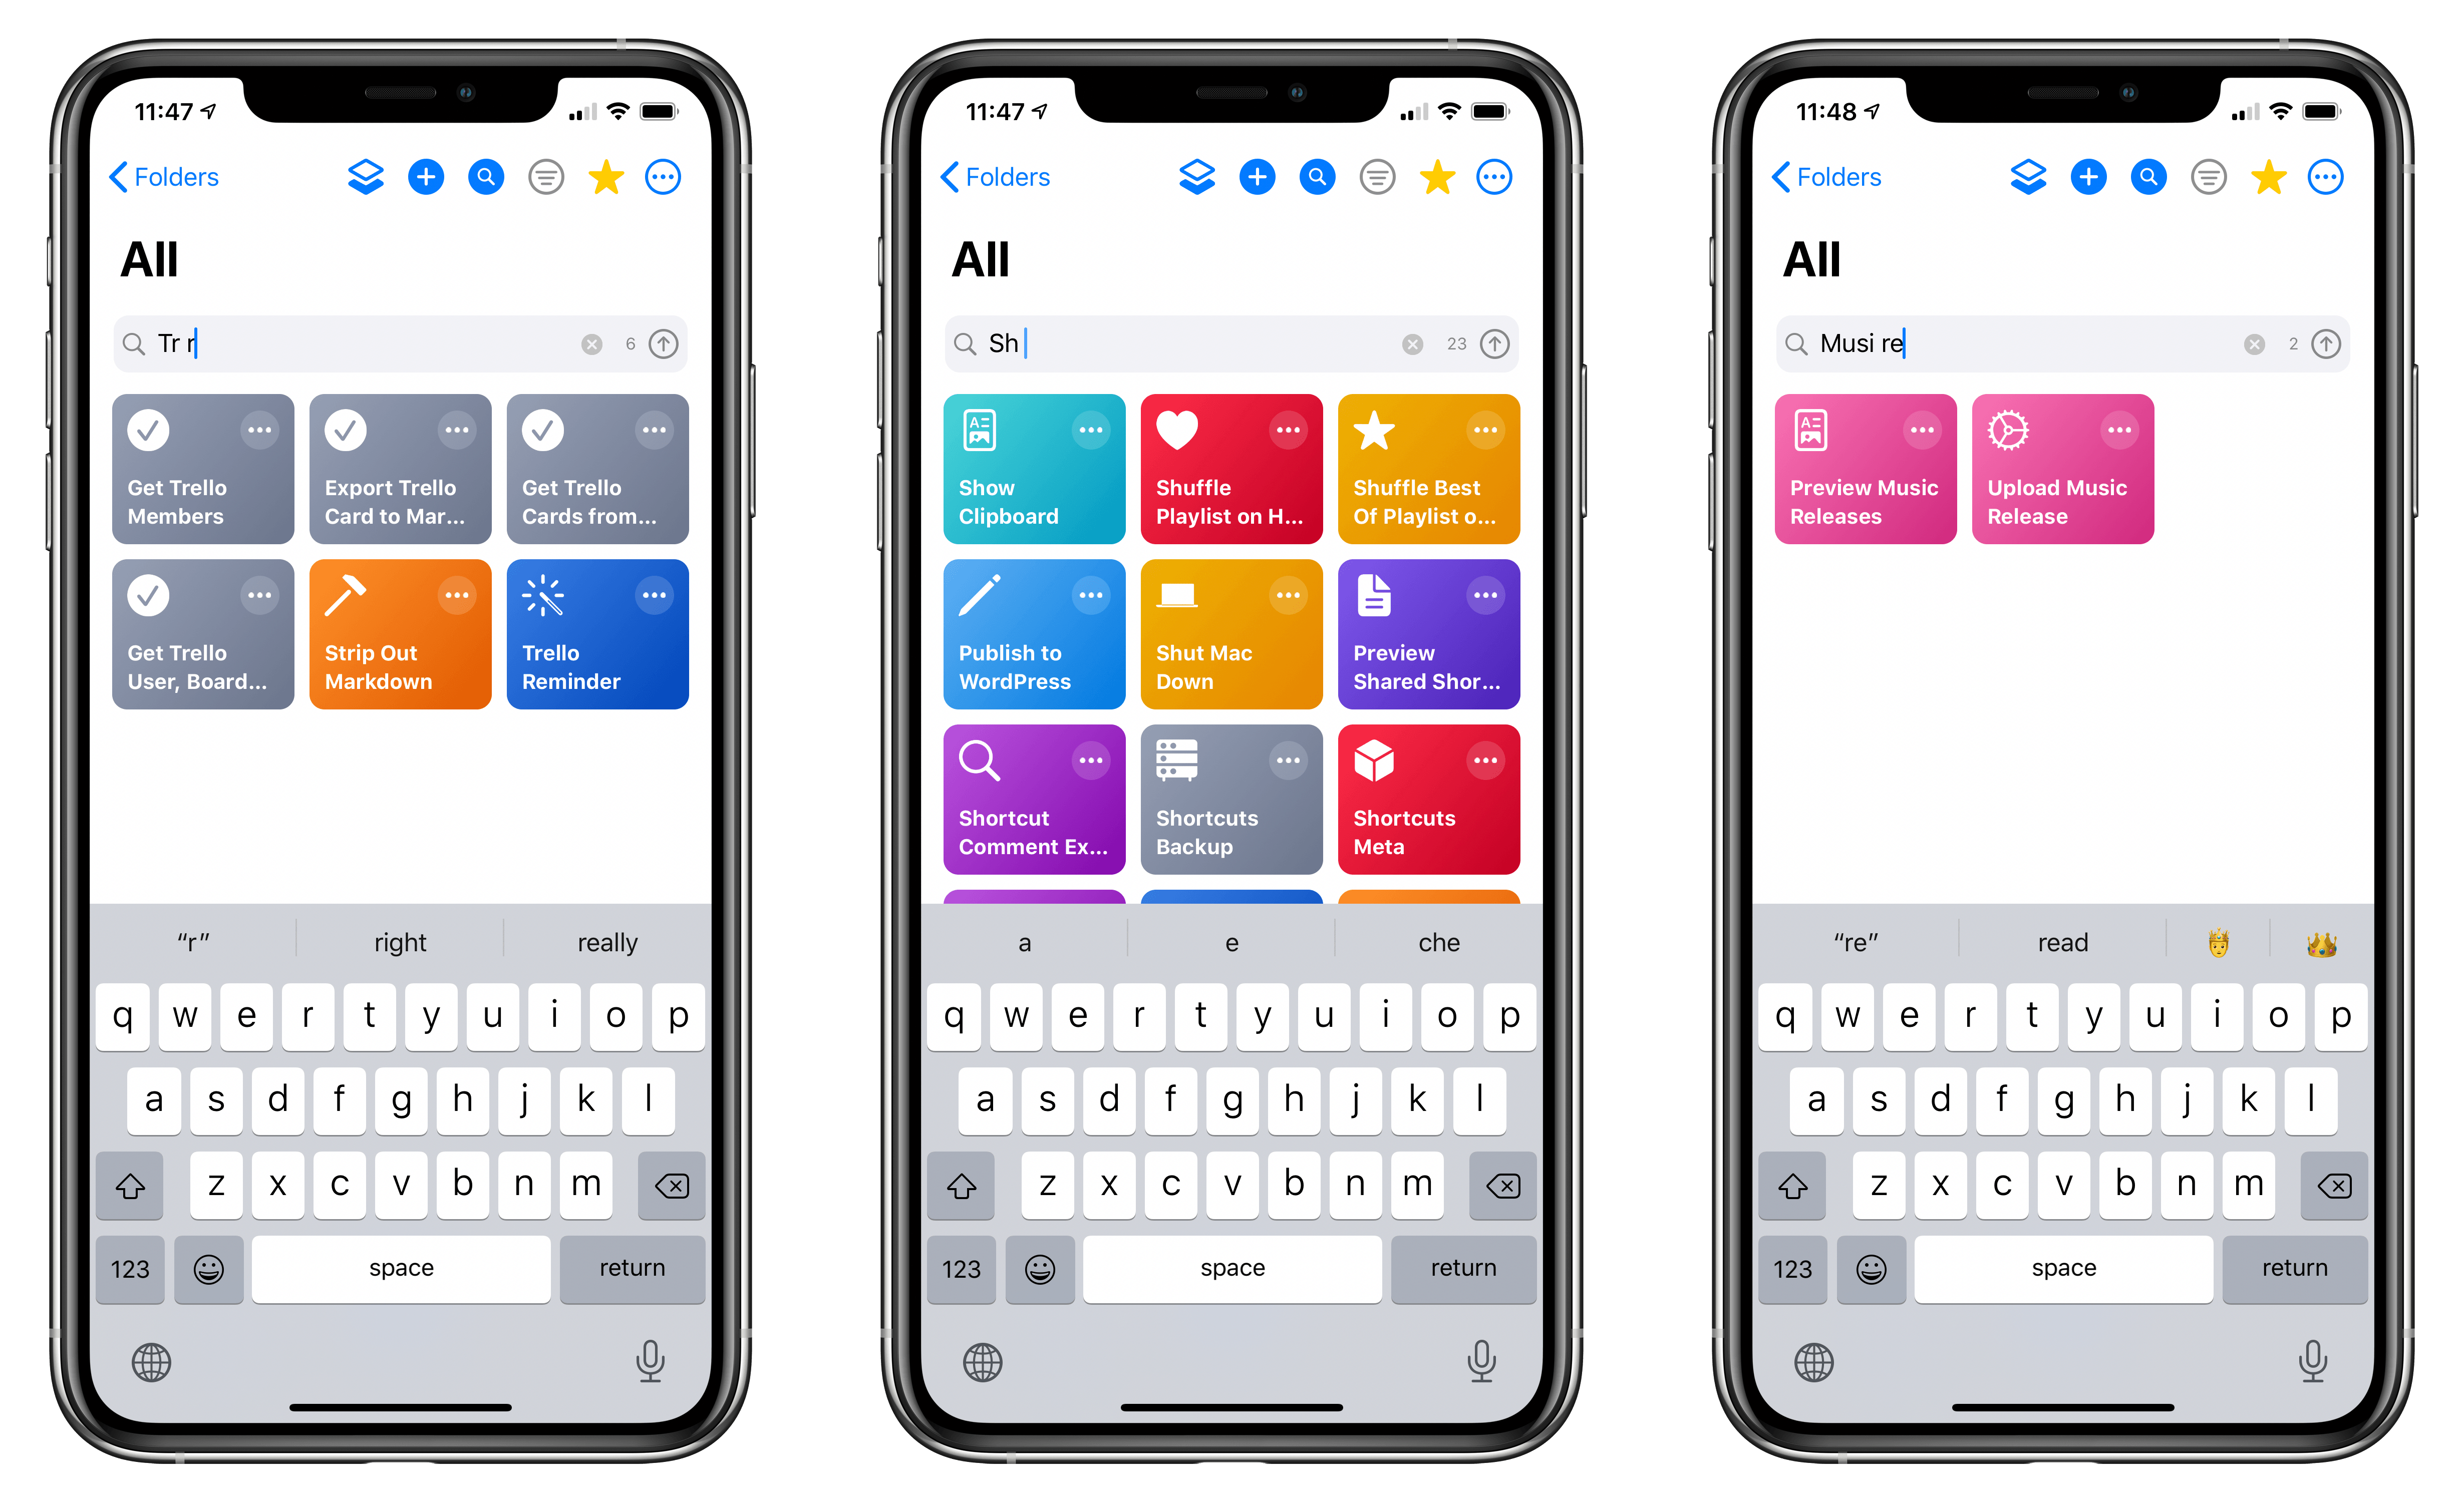 Examples of shortcuts that can be found with LaunchCuts' advanced search feature.